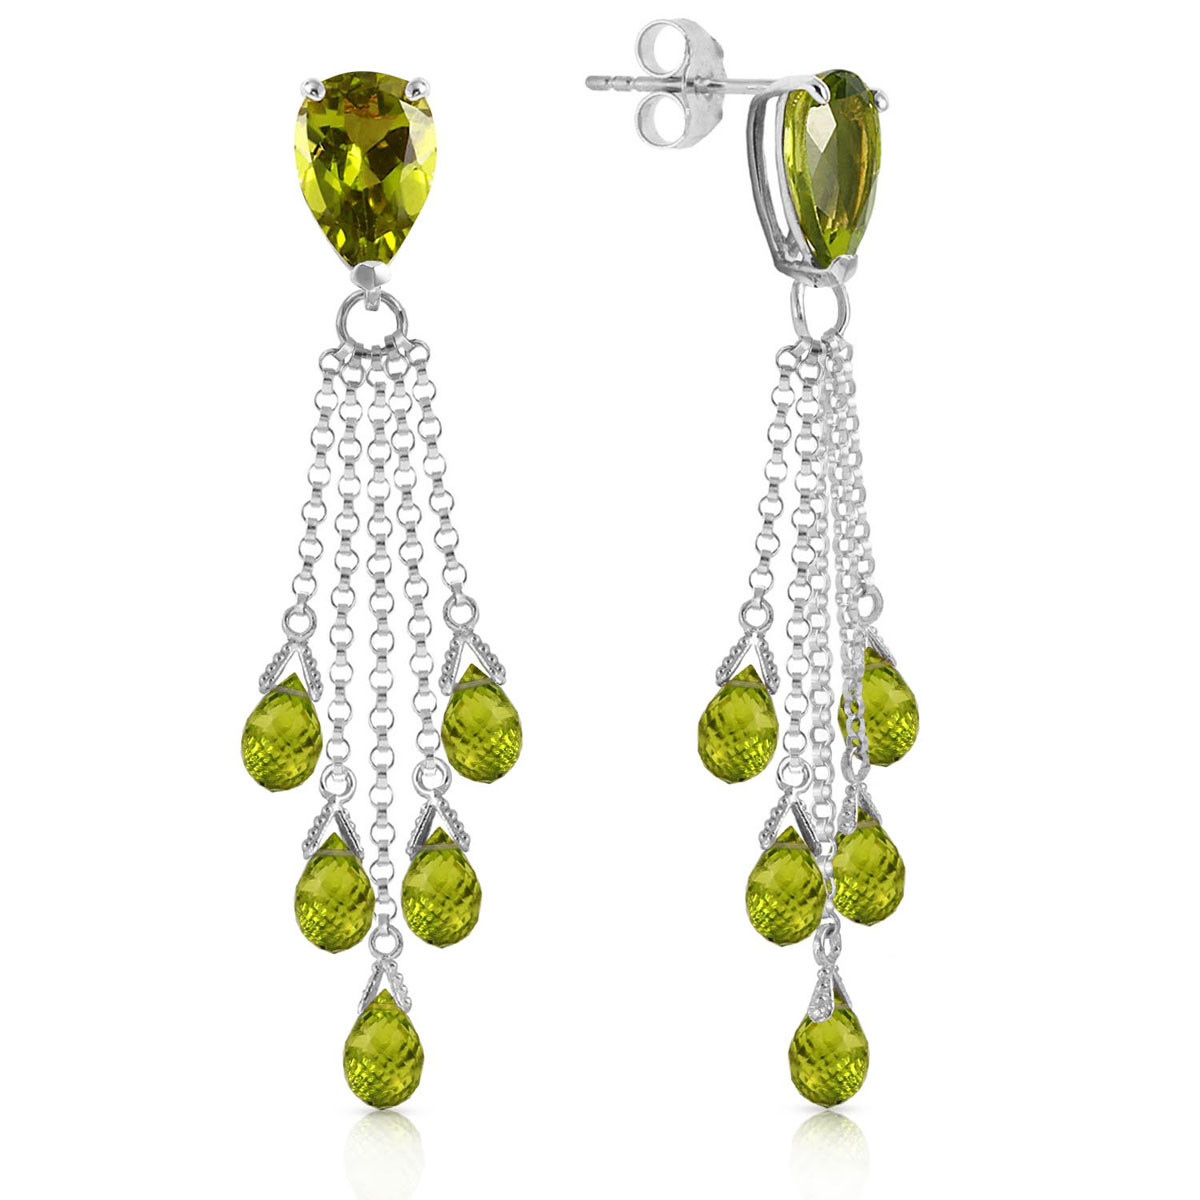 Peridot Comet Tail Drop Earrings 15.5 ctw in 9ct White Gold